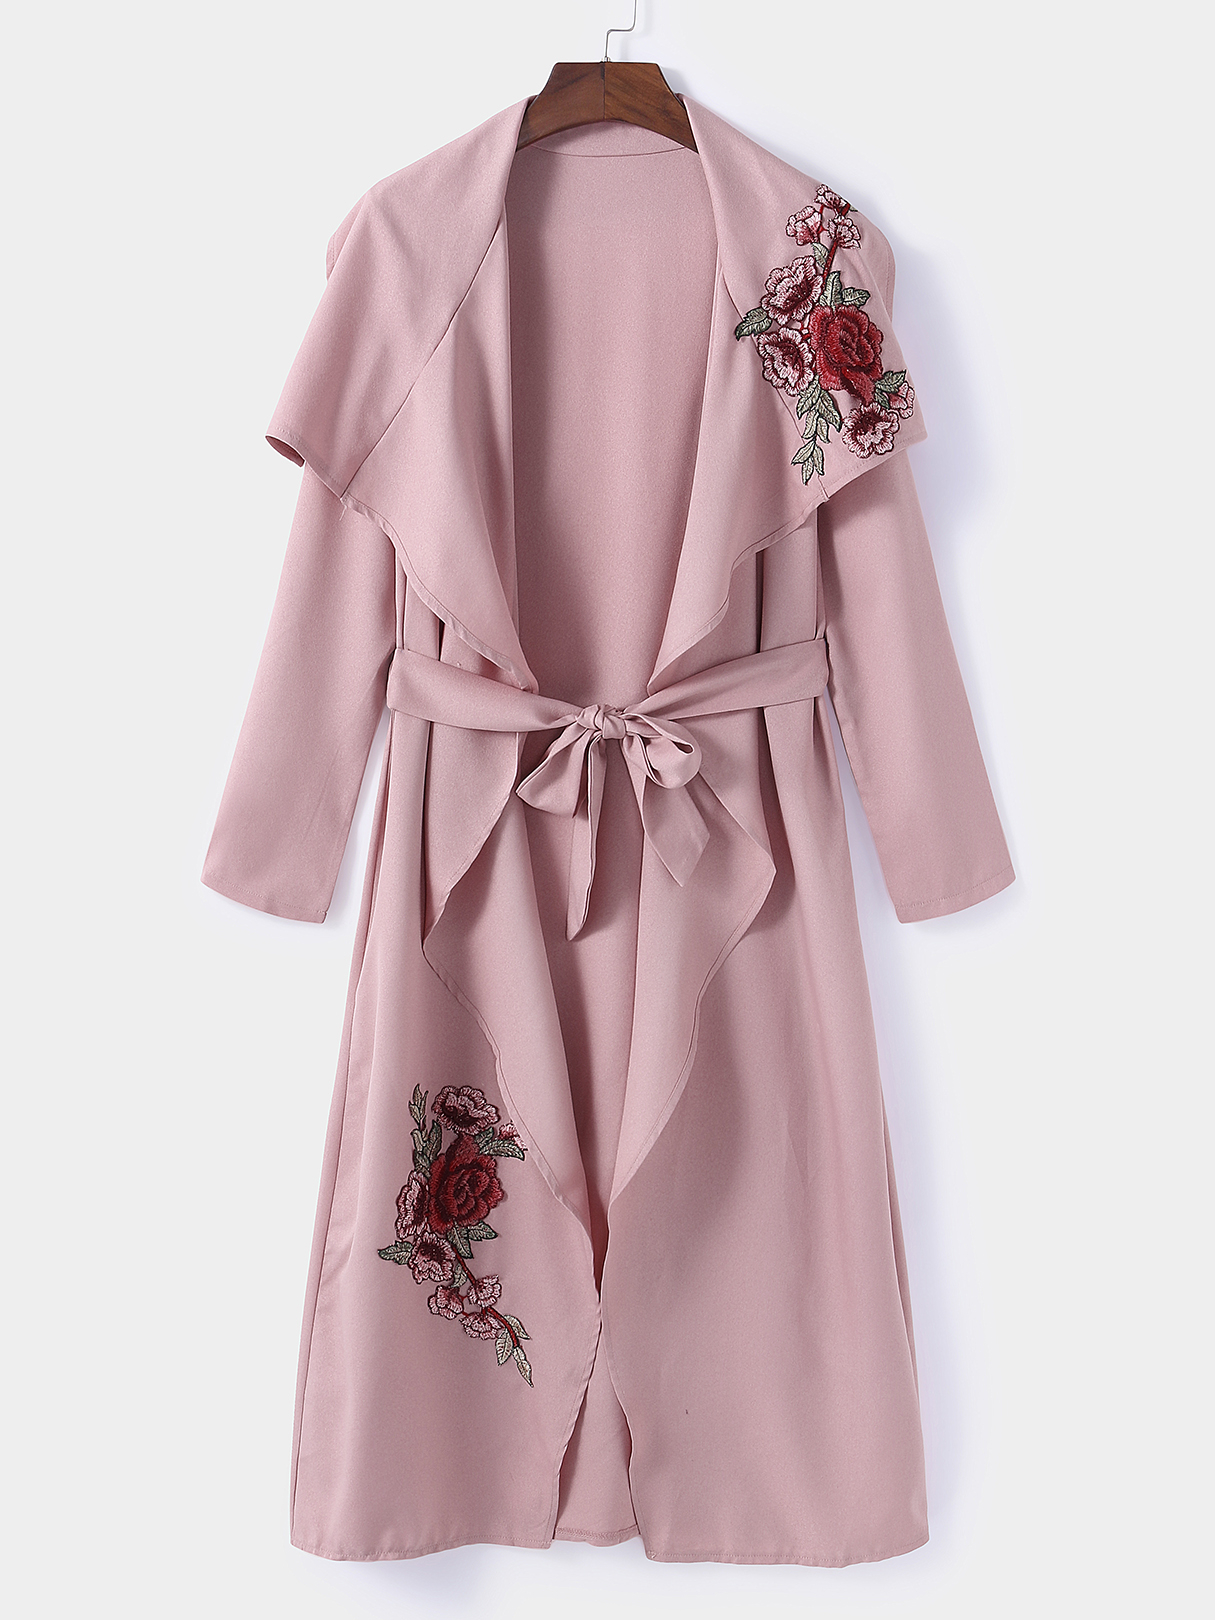 Image of Pink Rose Embroidered Lapel Collar Belt Design Trench Coat